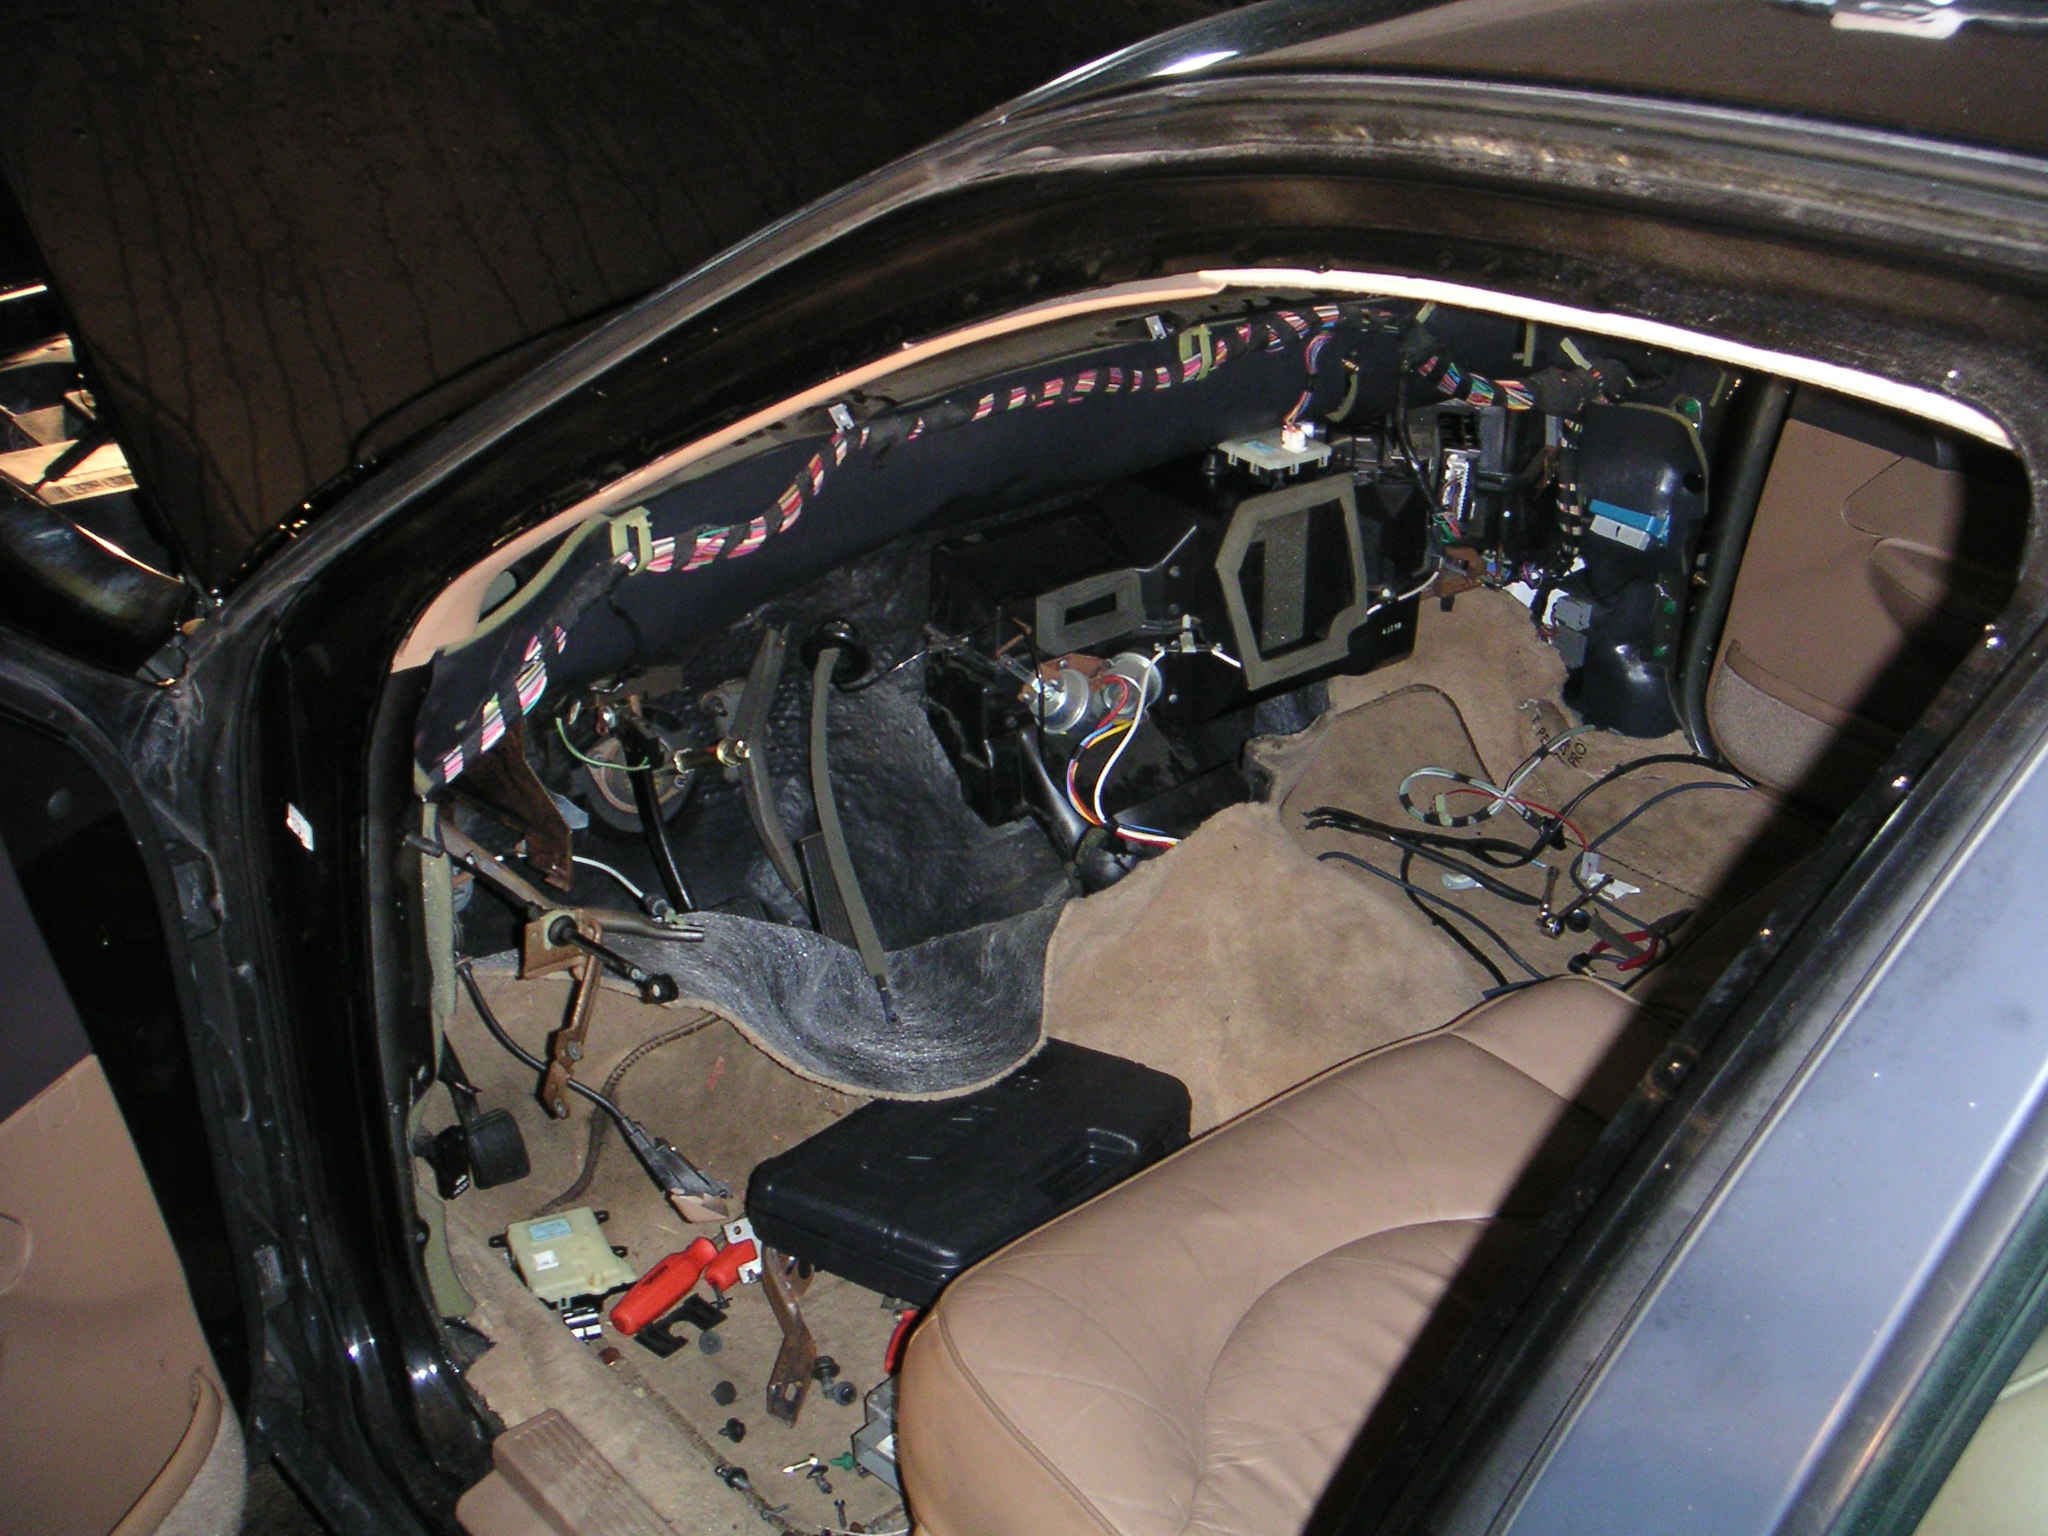 Ford Crown Victoria Dashboard Pictures 1992 Grand Marquis Engine Diagram A Lot Of The Electrical Connectors Need To Be Seperated Under Hood Prior Removing Dash